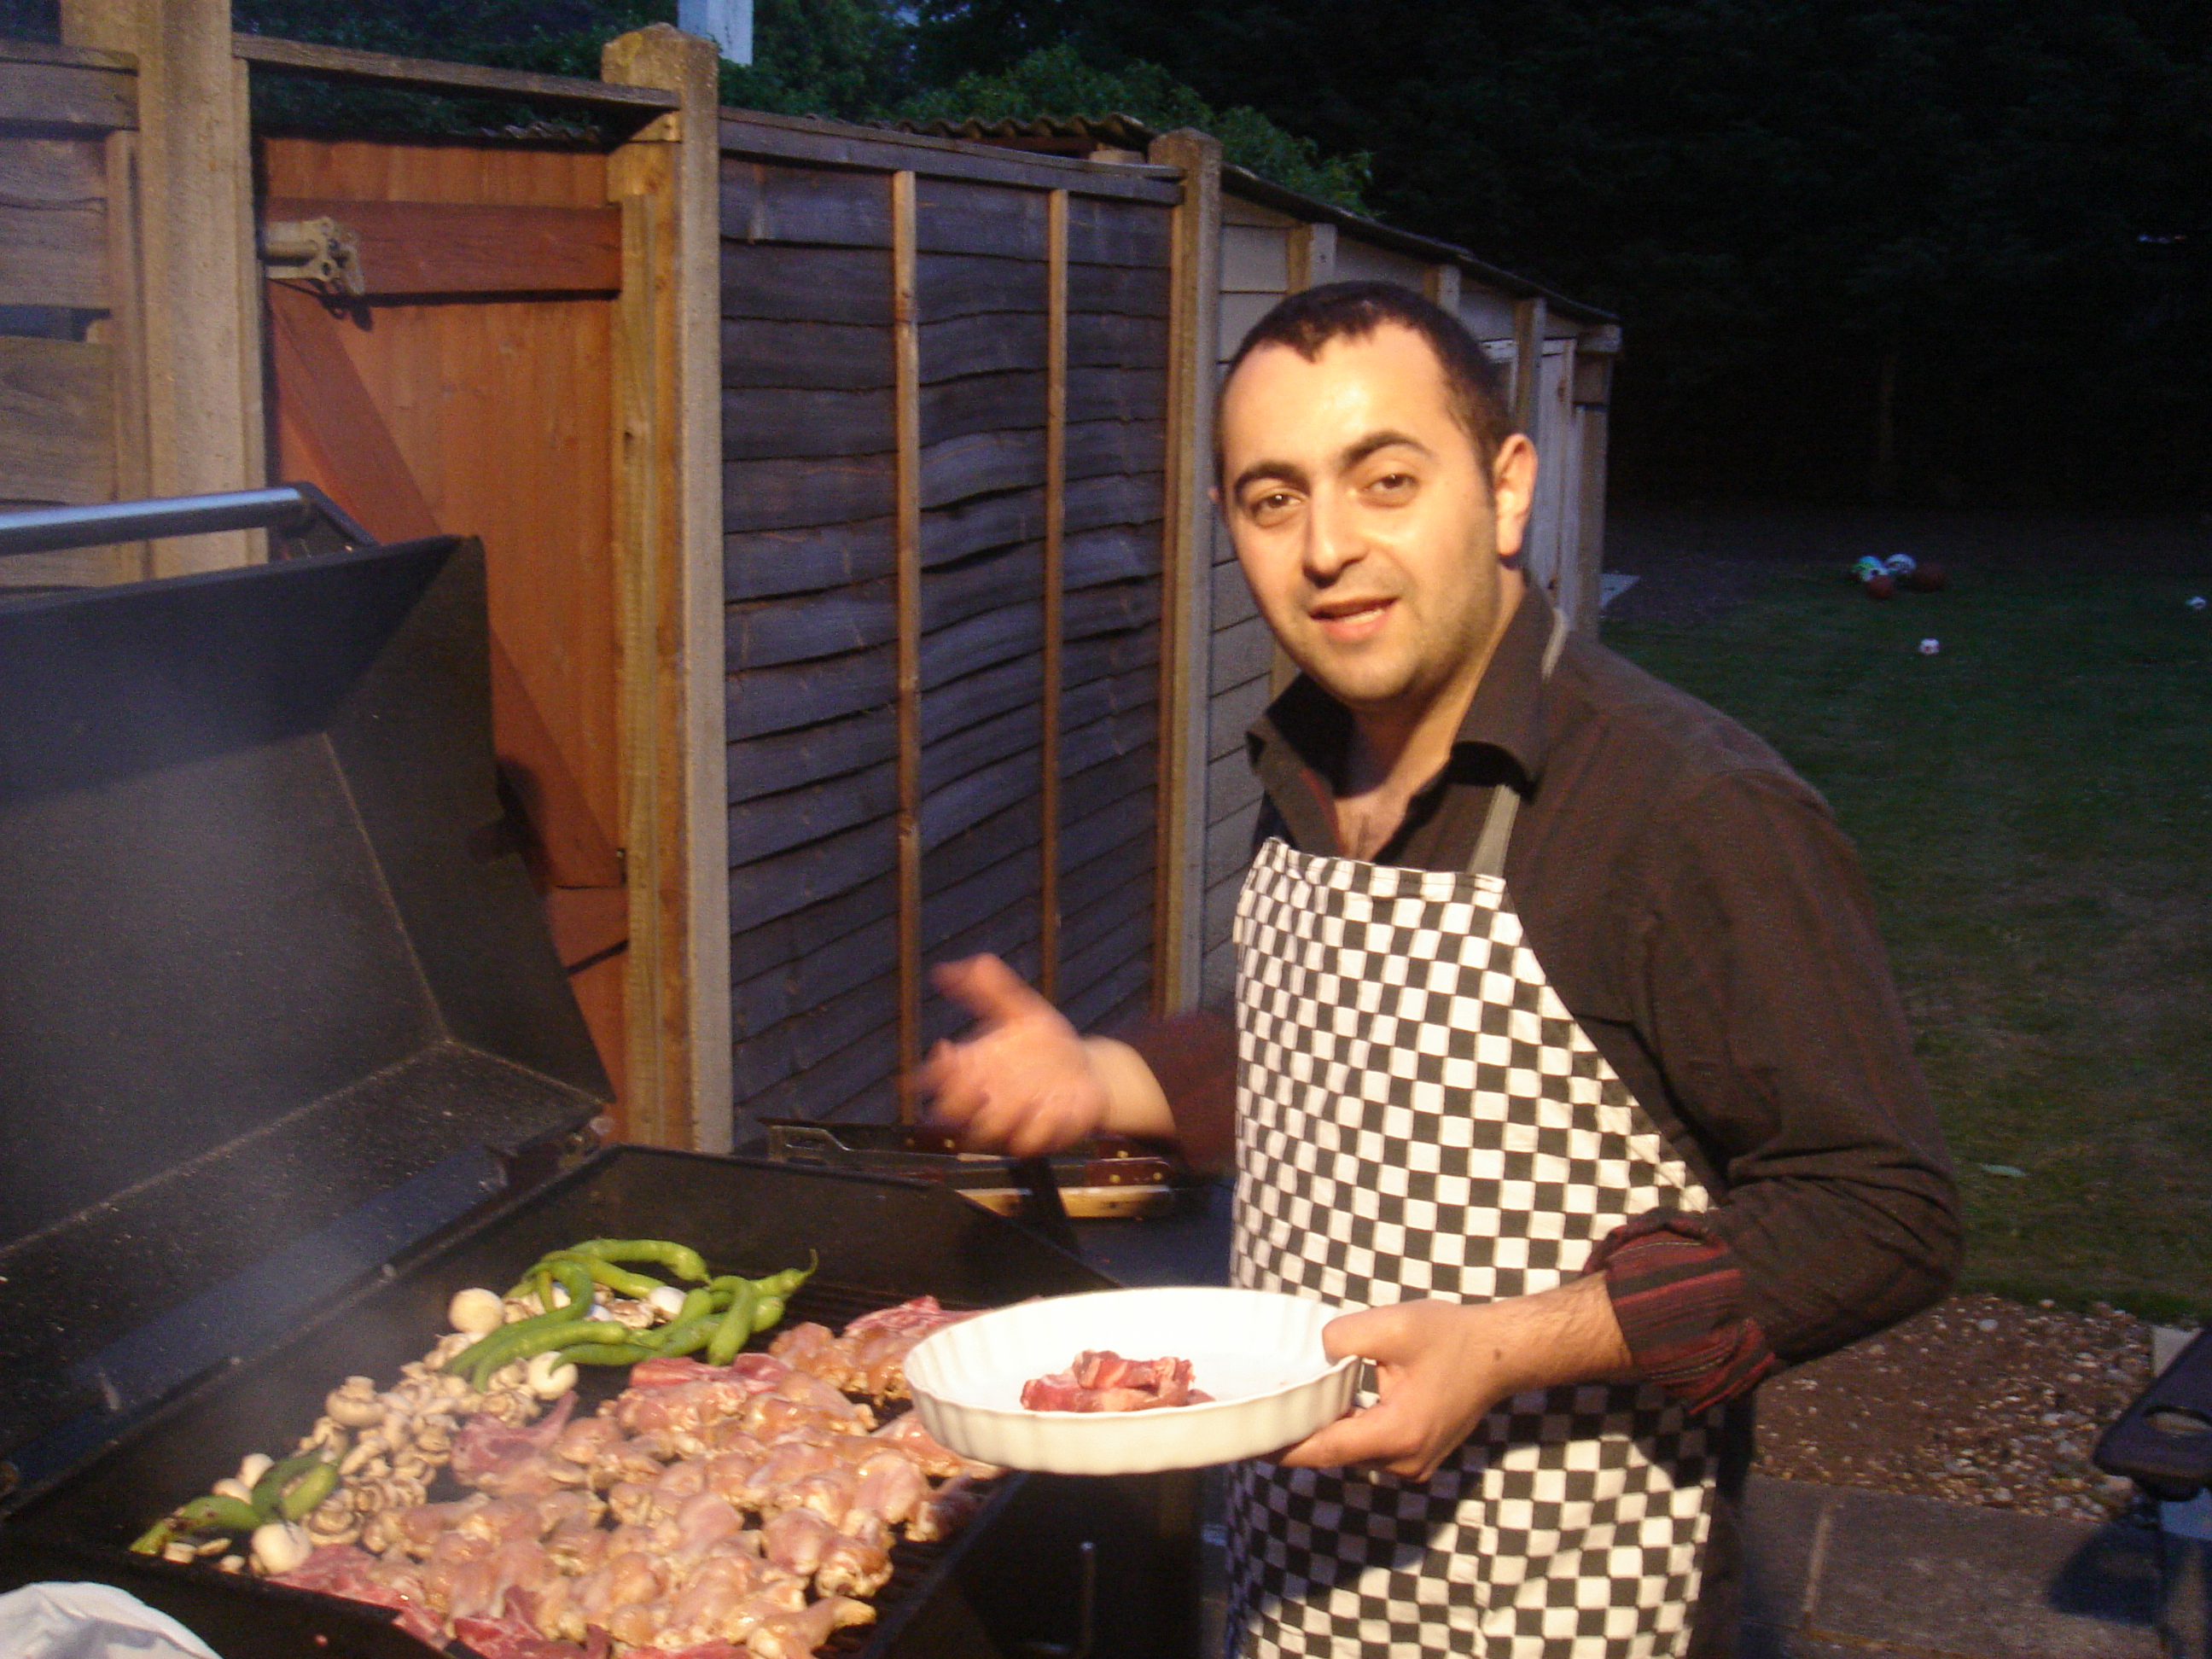 Night time BBQ's are awesome